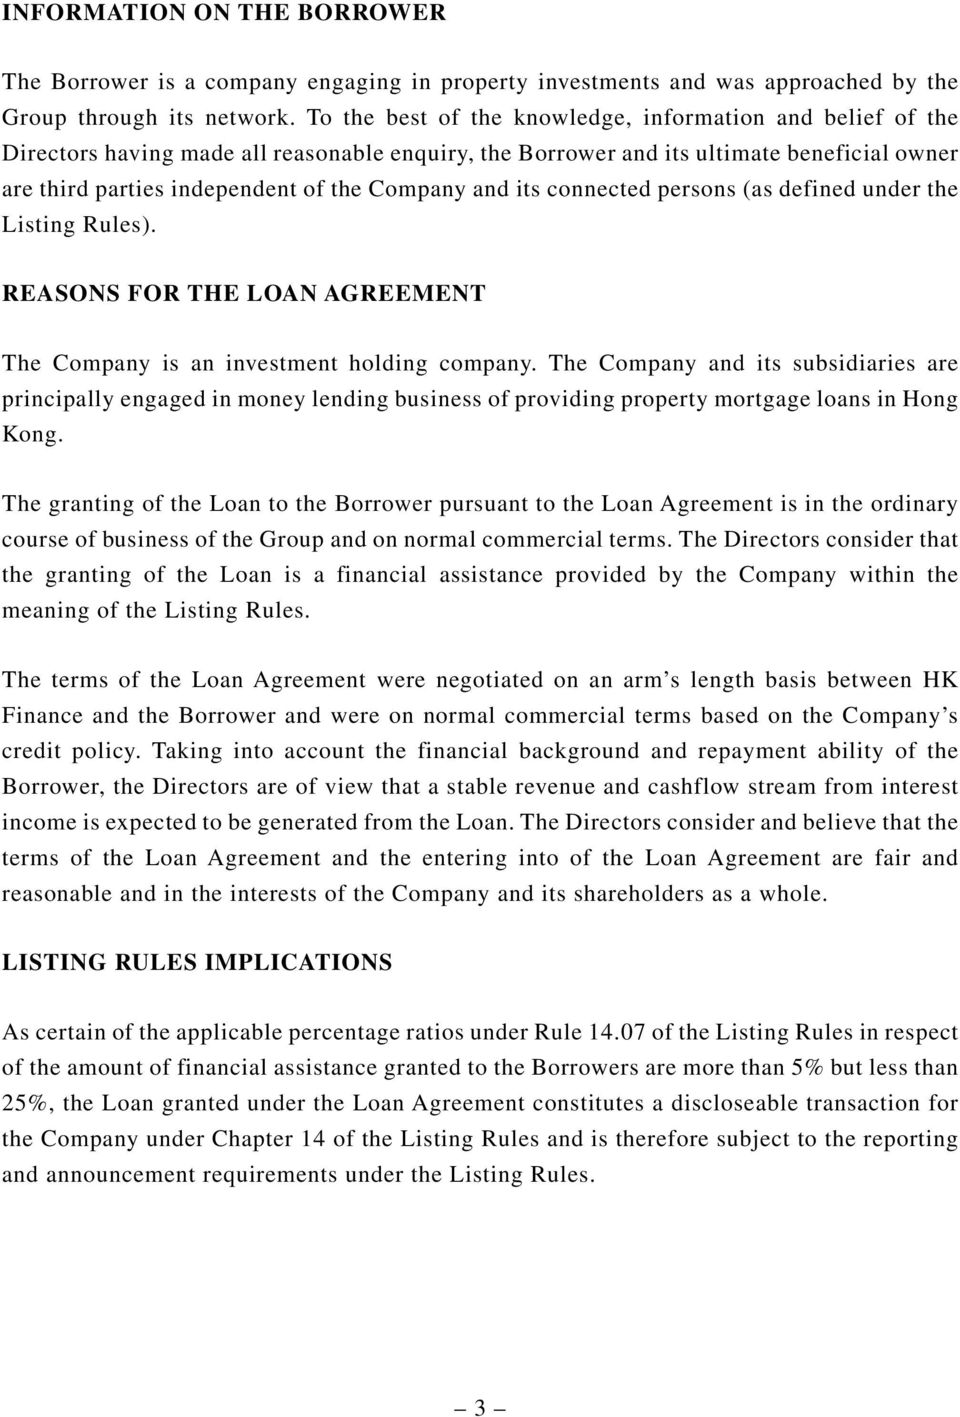 and its connected persons (as defined under the Listing Rules). REASONS FOR THE LOAN AGREEMENT The Company is an investment holding company.